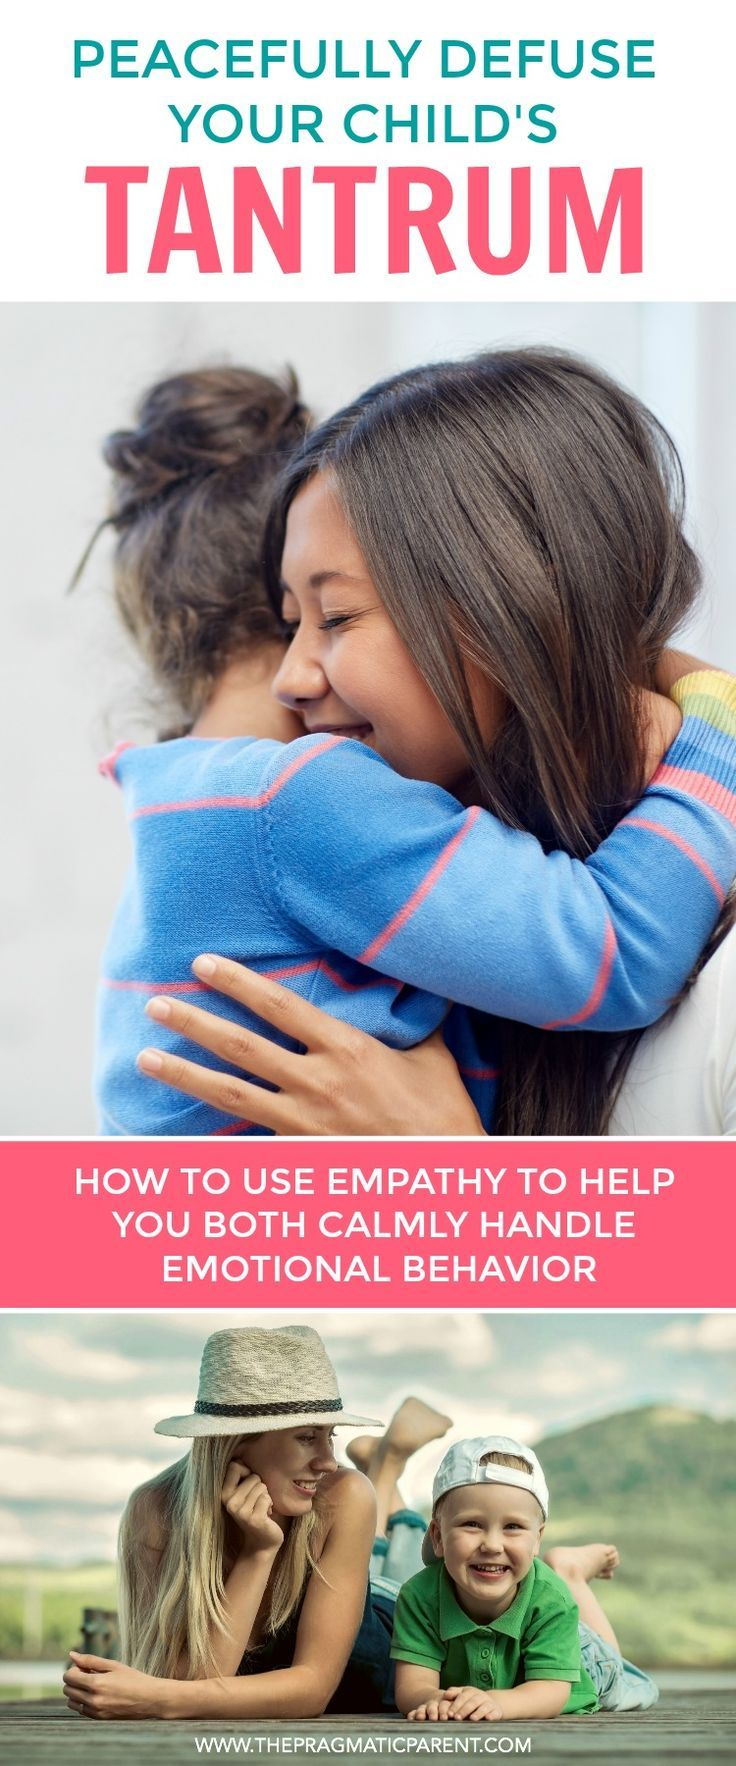 How to peacefully defuse your child's tantrum using empathy and teaching about emotions in the process. Stop tantrums by helping your child learn about emotions, name feelings, give back power and calmly handle emotional behavior.